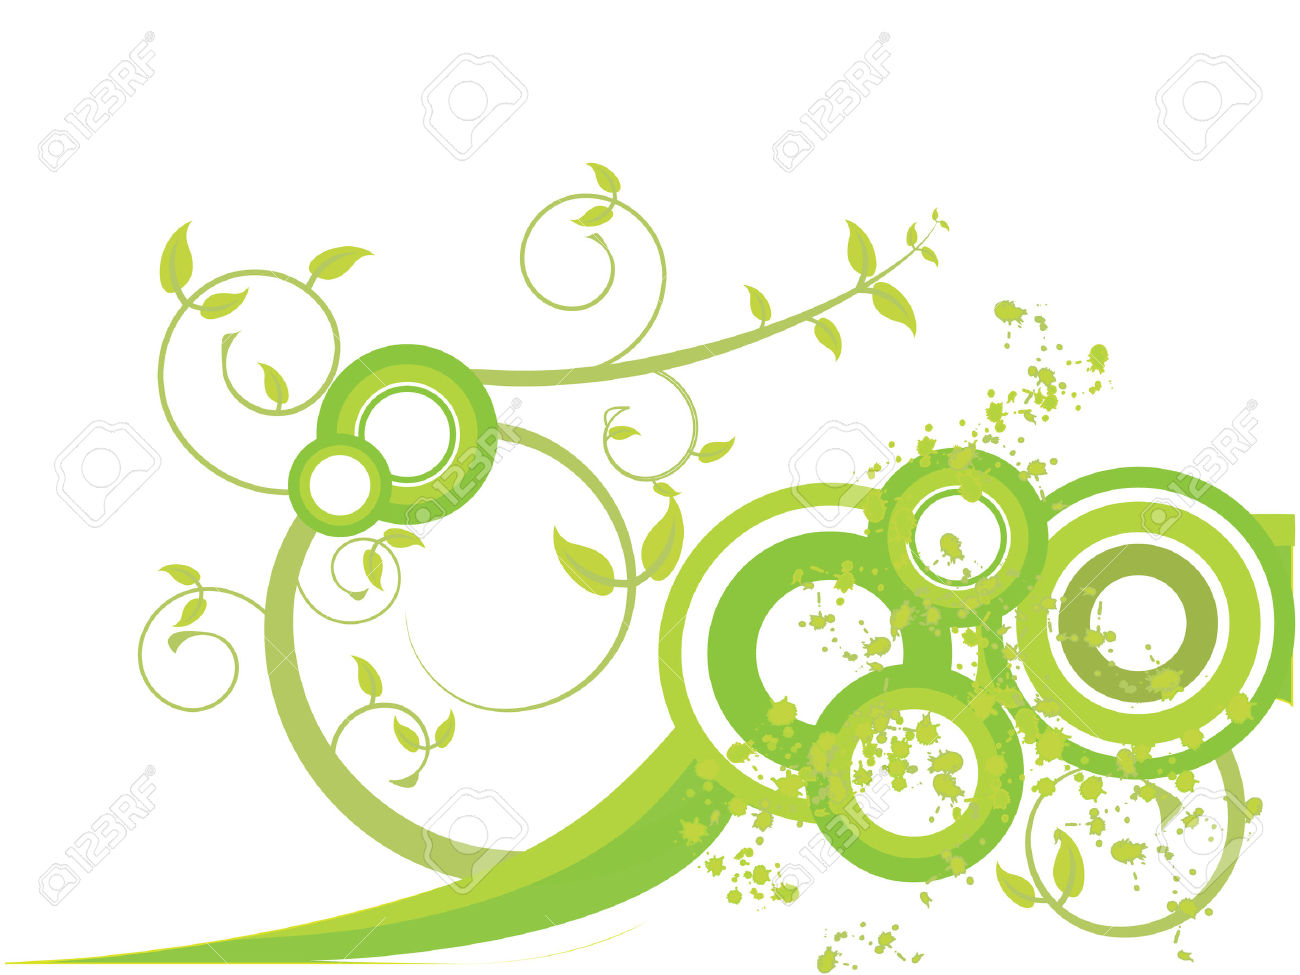 Green Leaves With Spirals And Splashes Royalty Free Cliparts.